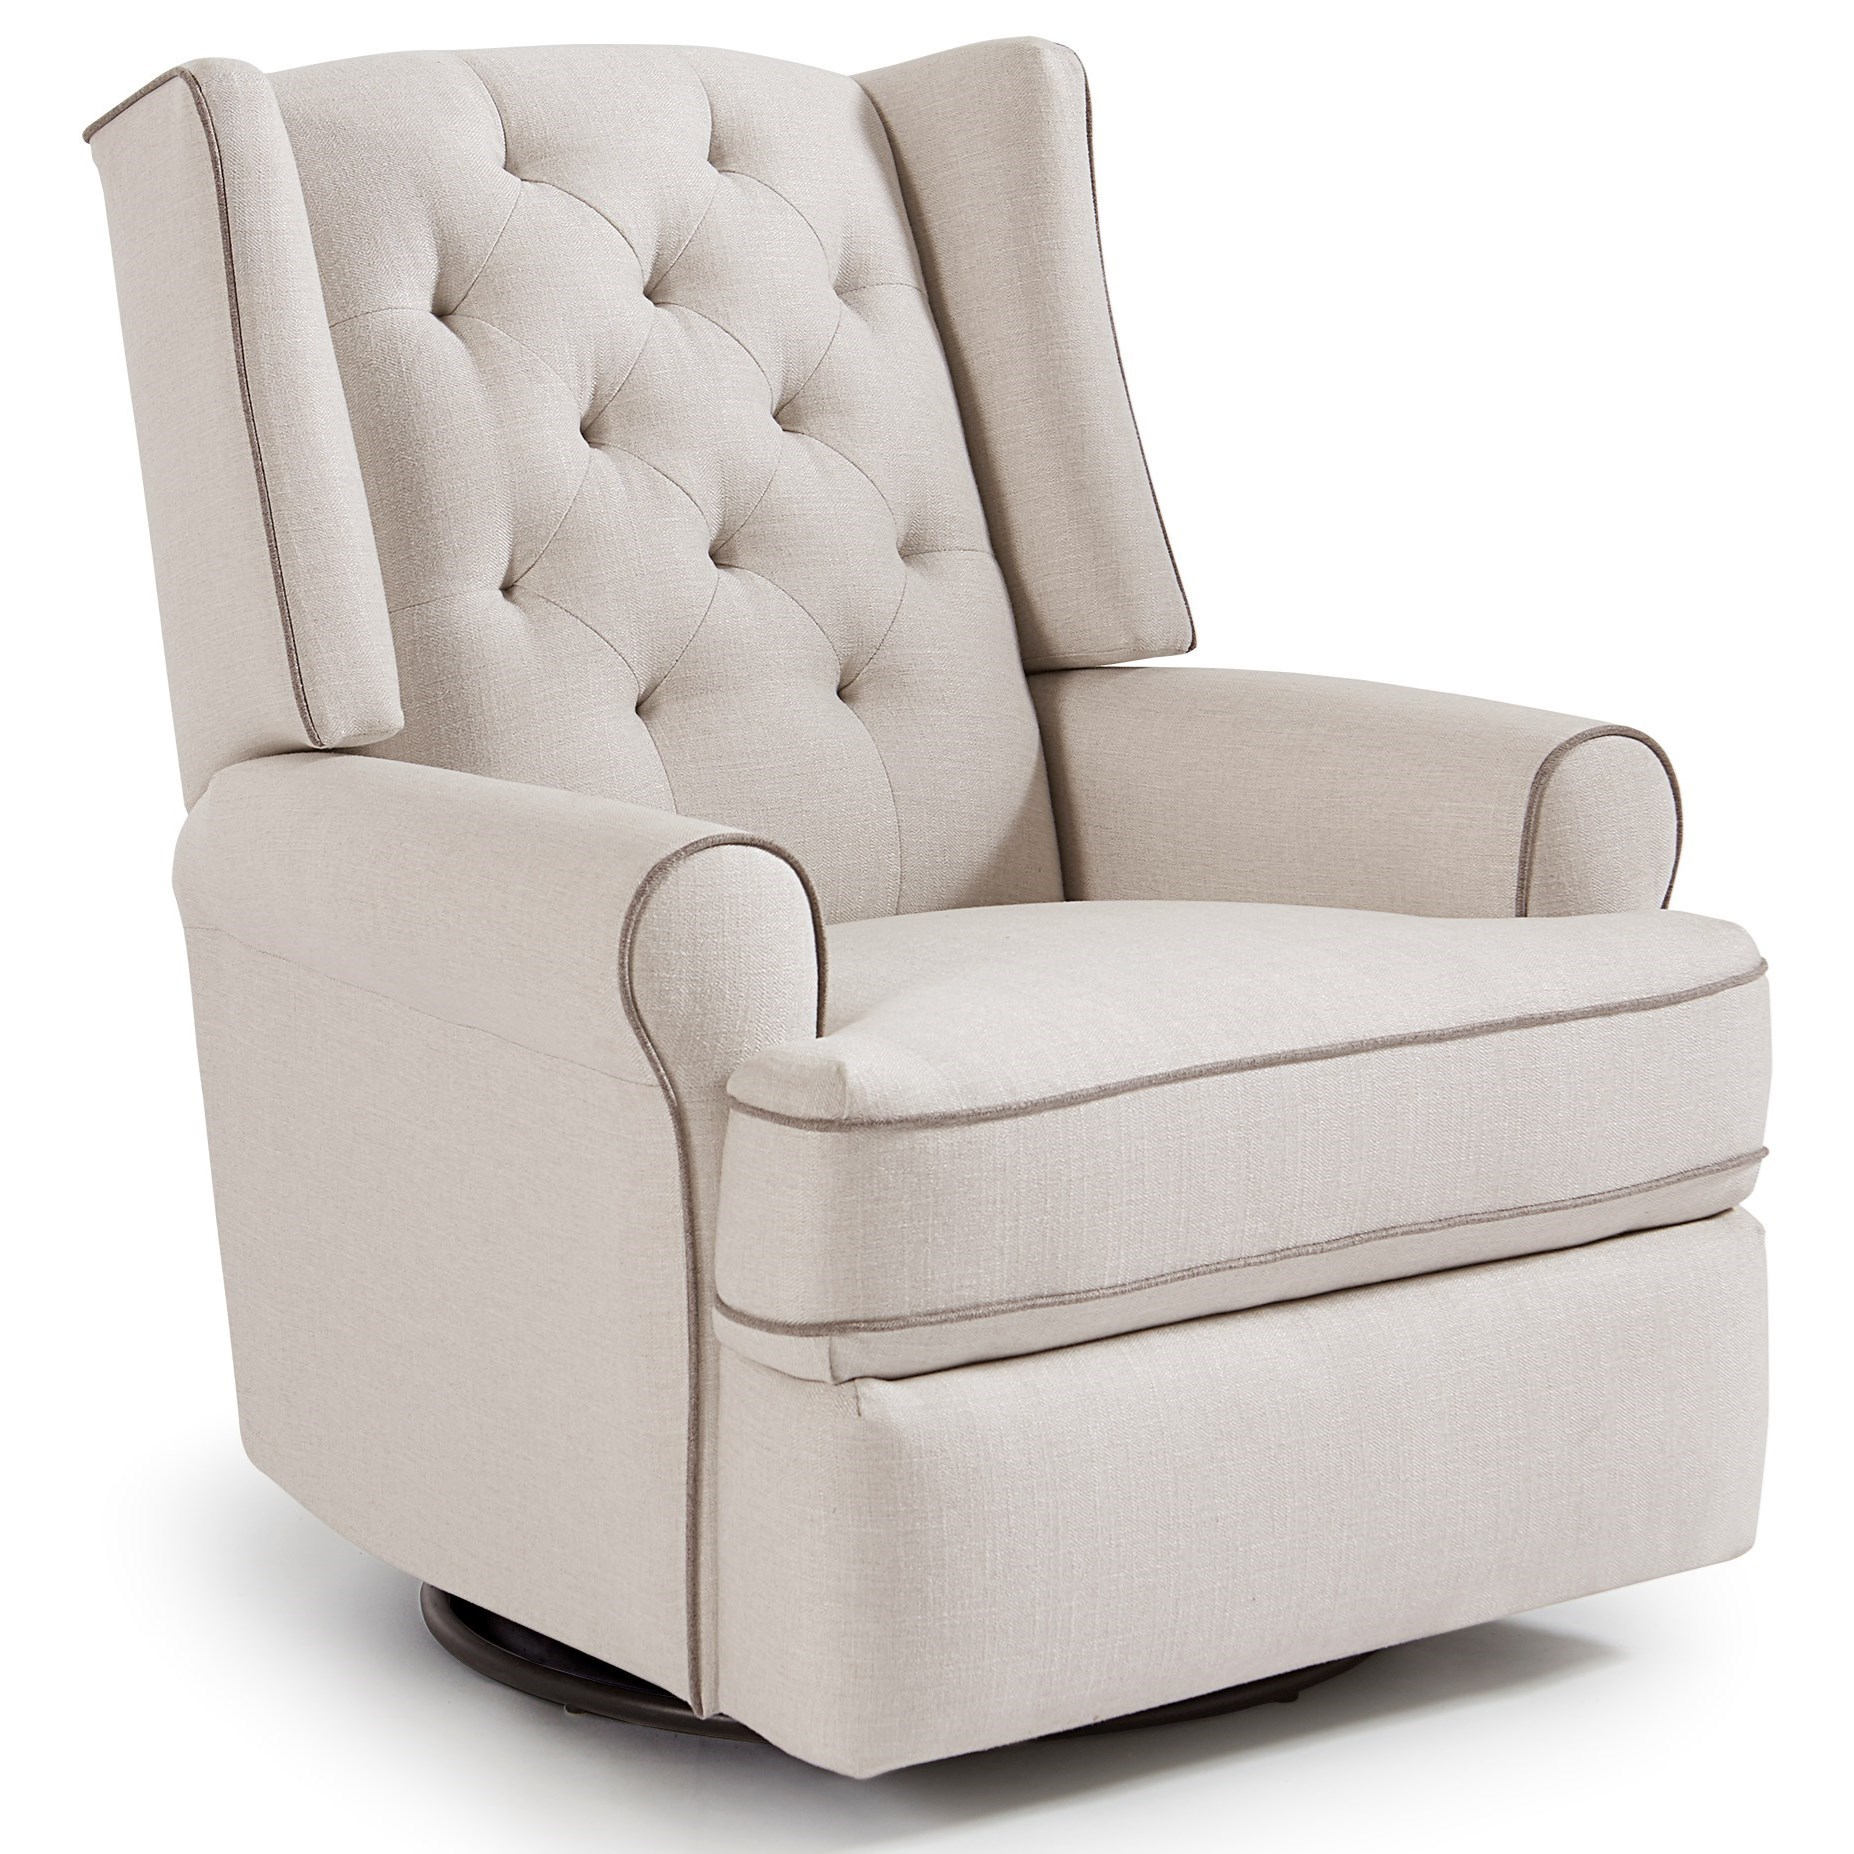 Rooms To Go Swivel Chair Vendor 411 Kendra 5ni85 Traditional Tufted Swivel Glider